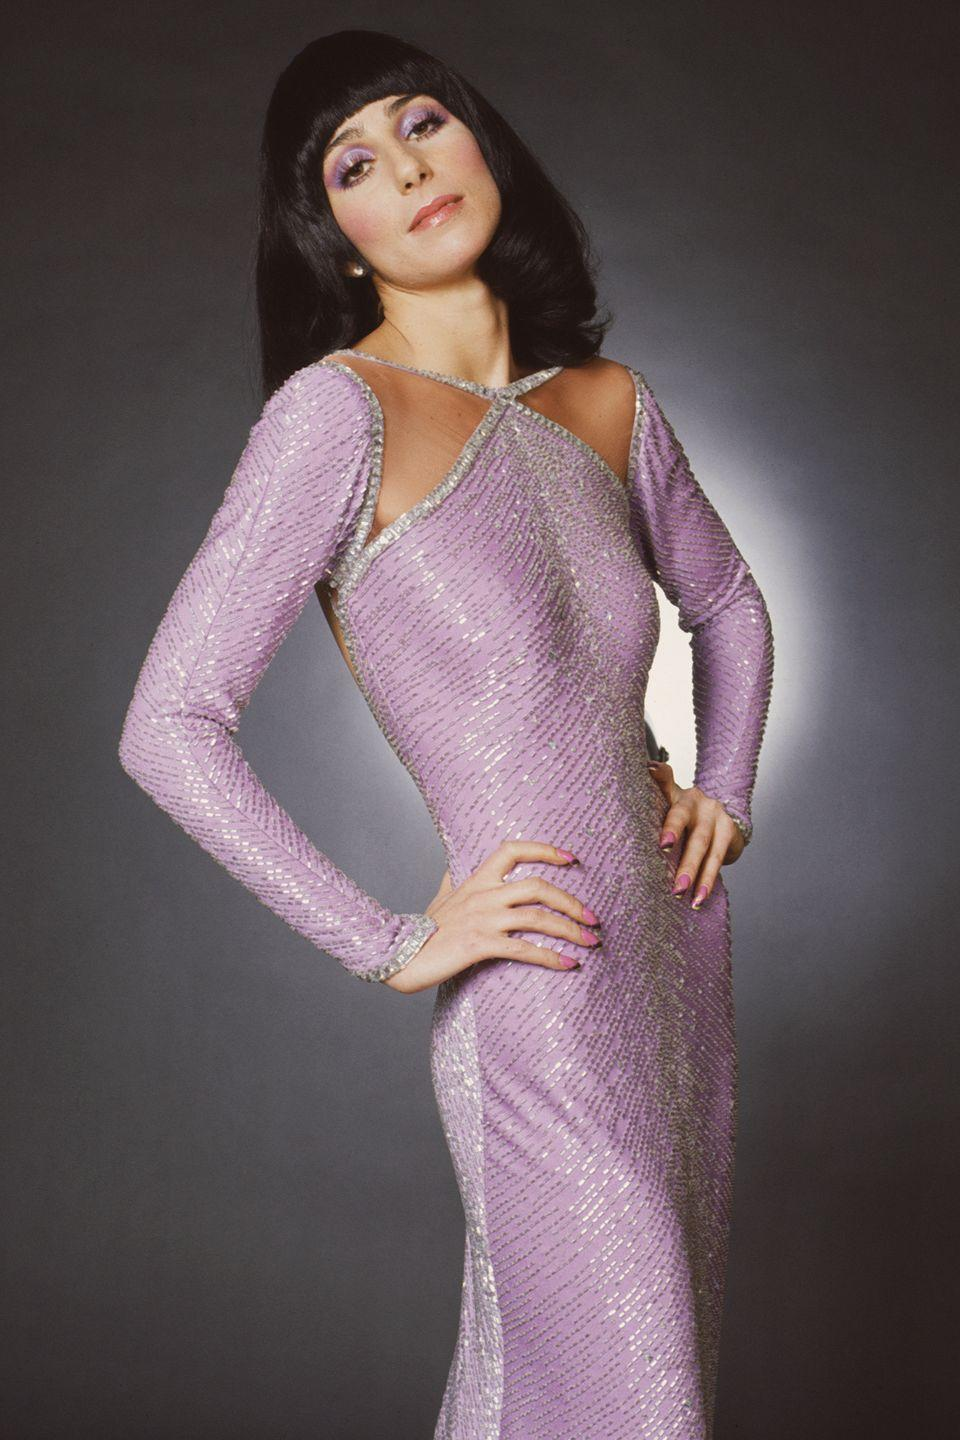 <p>She poses for a photo in a sparkly, purple gown.</p>